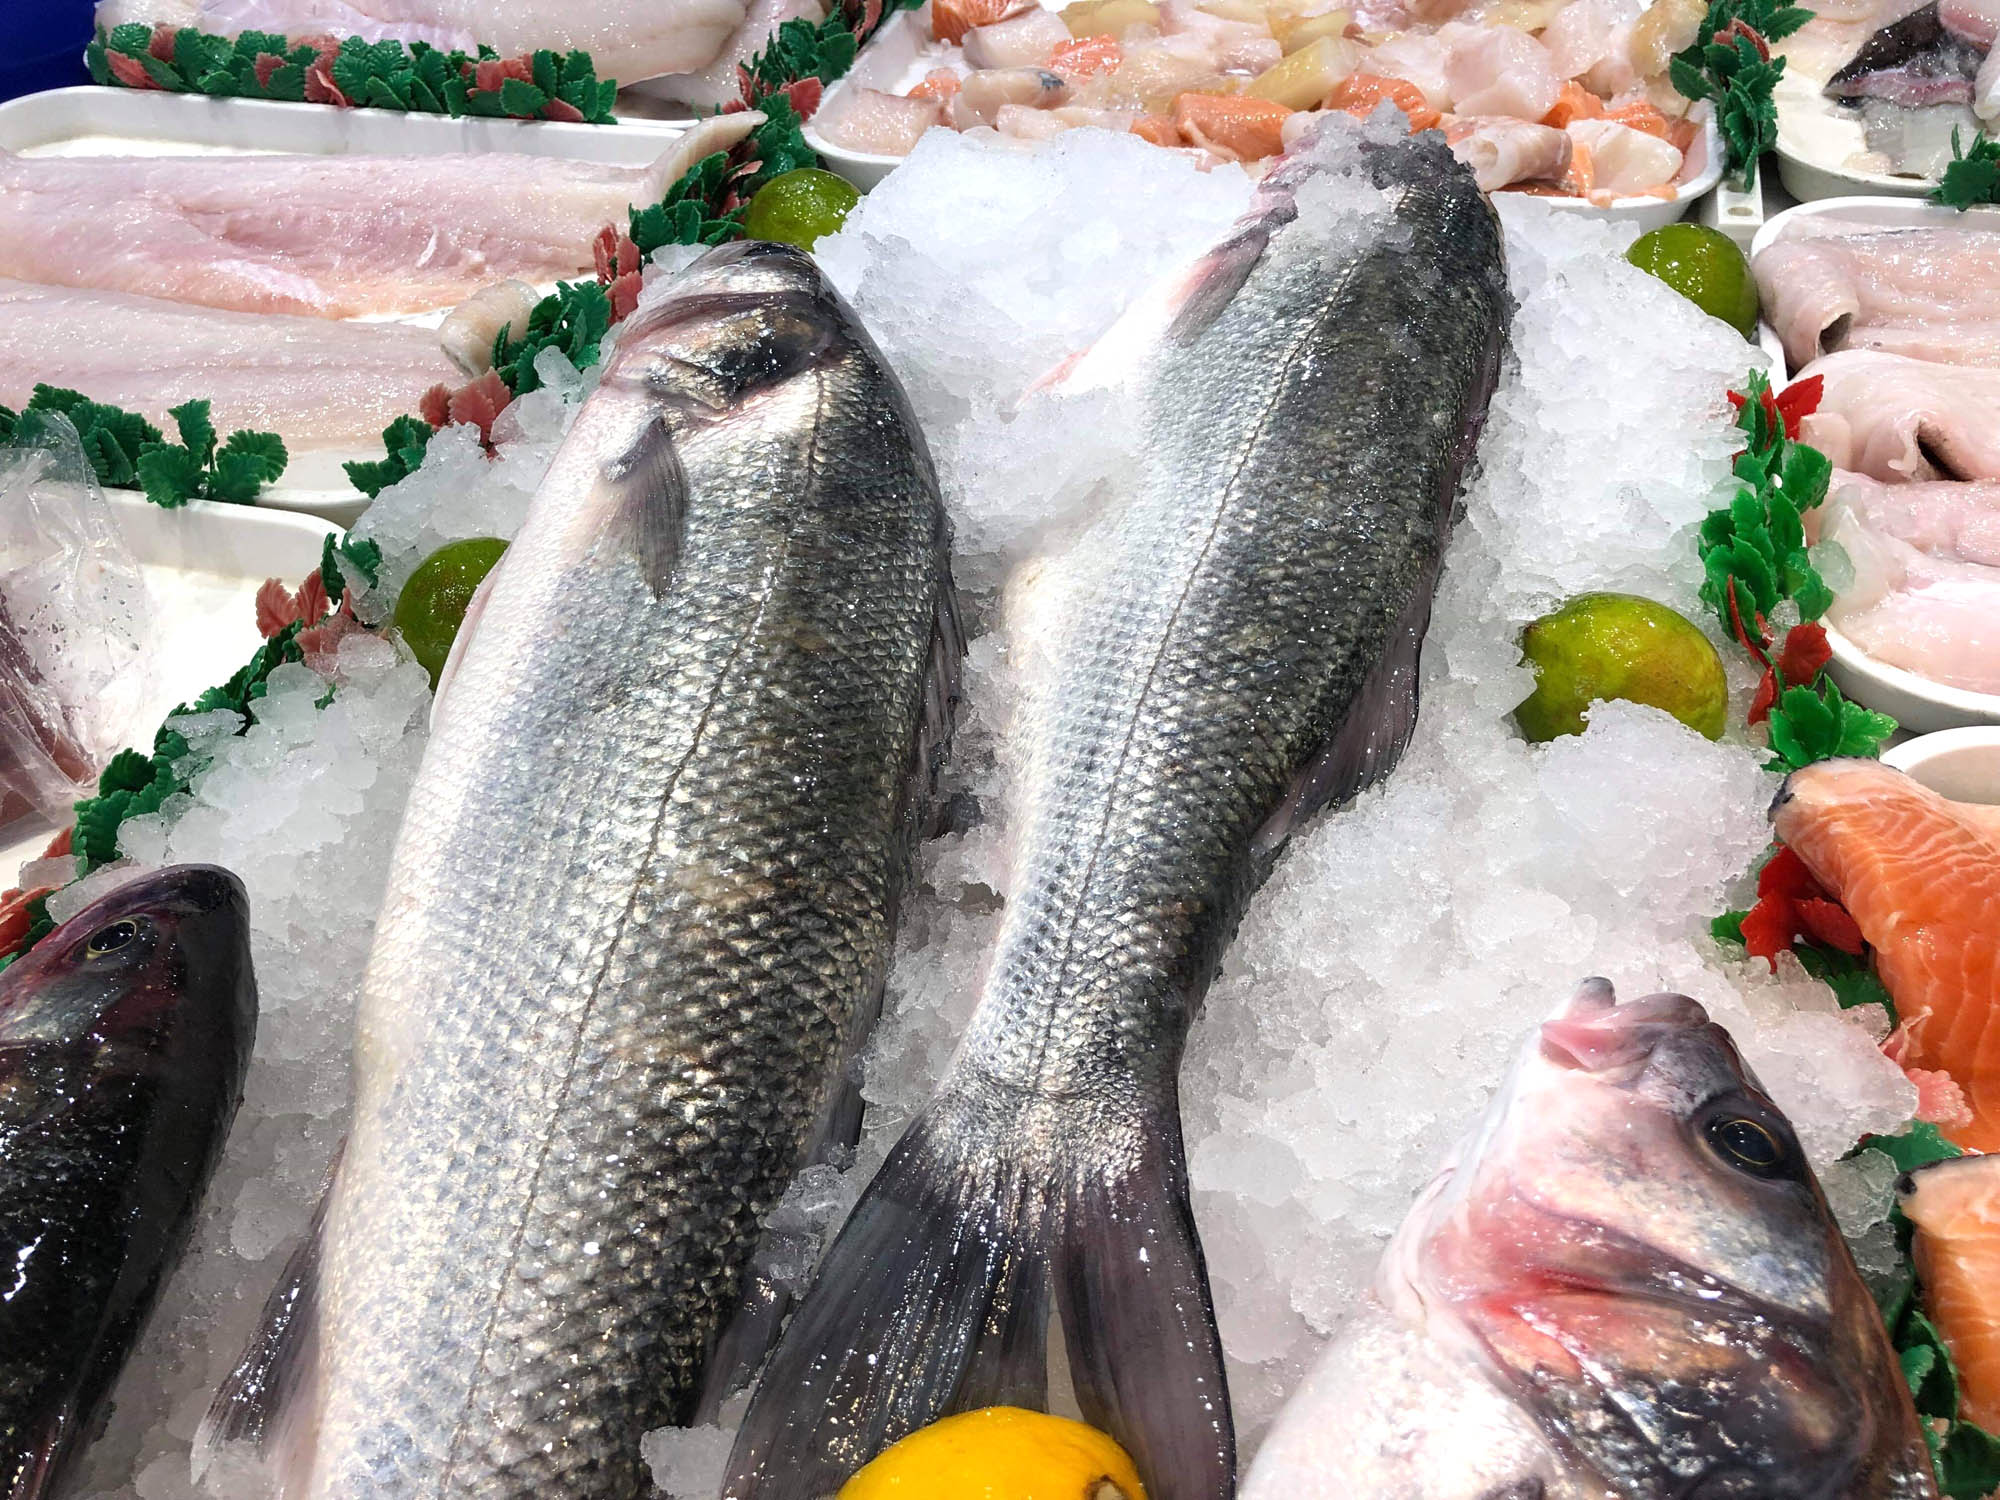 Local bass: take off the fillets and pan fry in butter until the skin is crispu and the flesh flakes. Hard to beat.